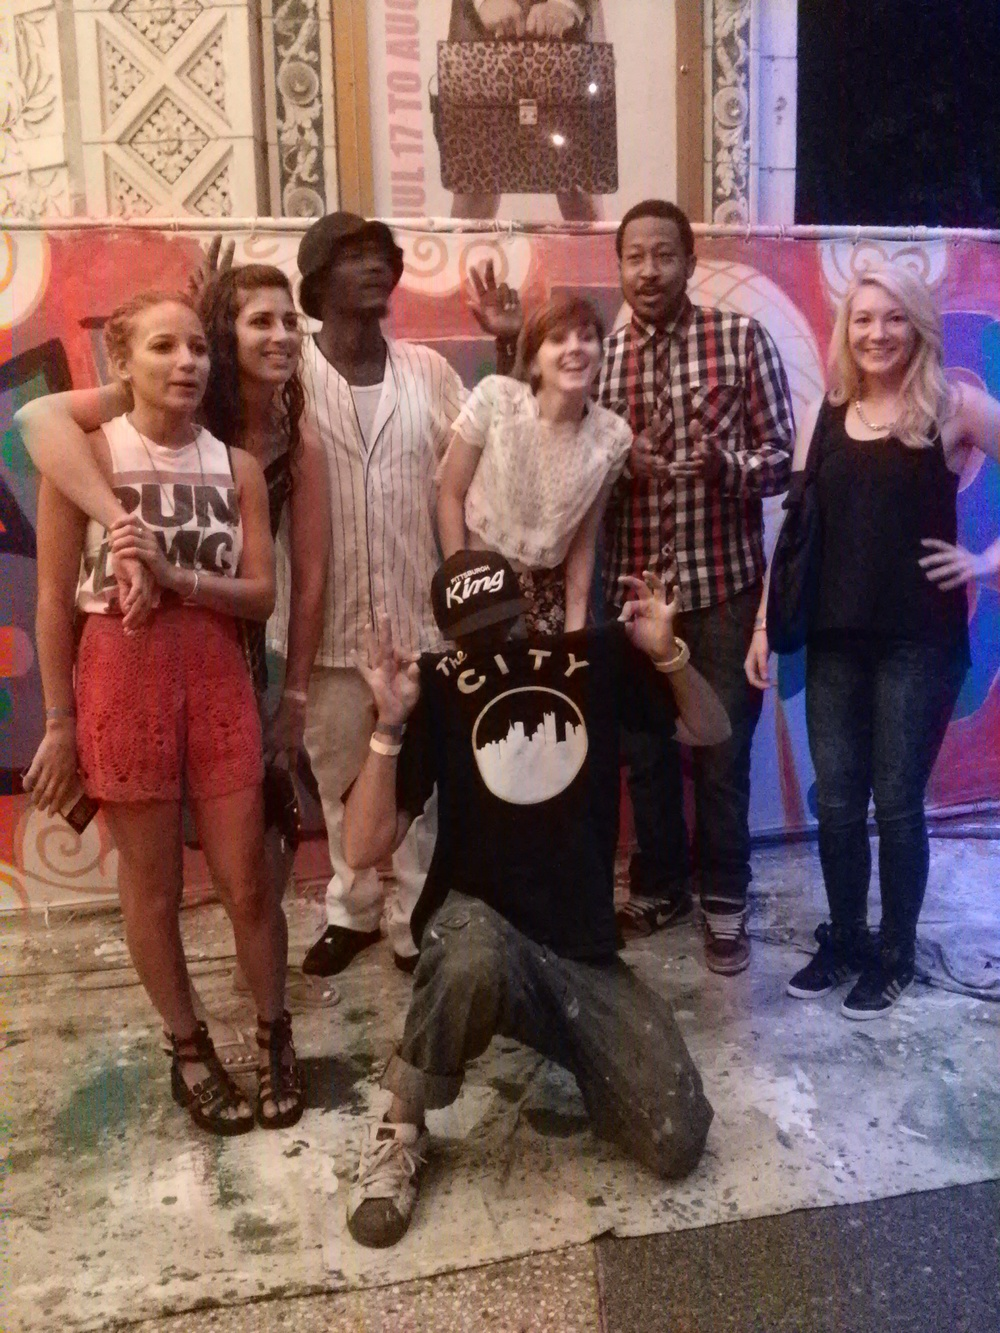 Mac Millers ex girlfriend Nomi Leasure featured on the far left, some of our MLK team and some guests!